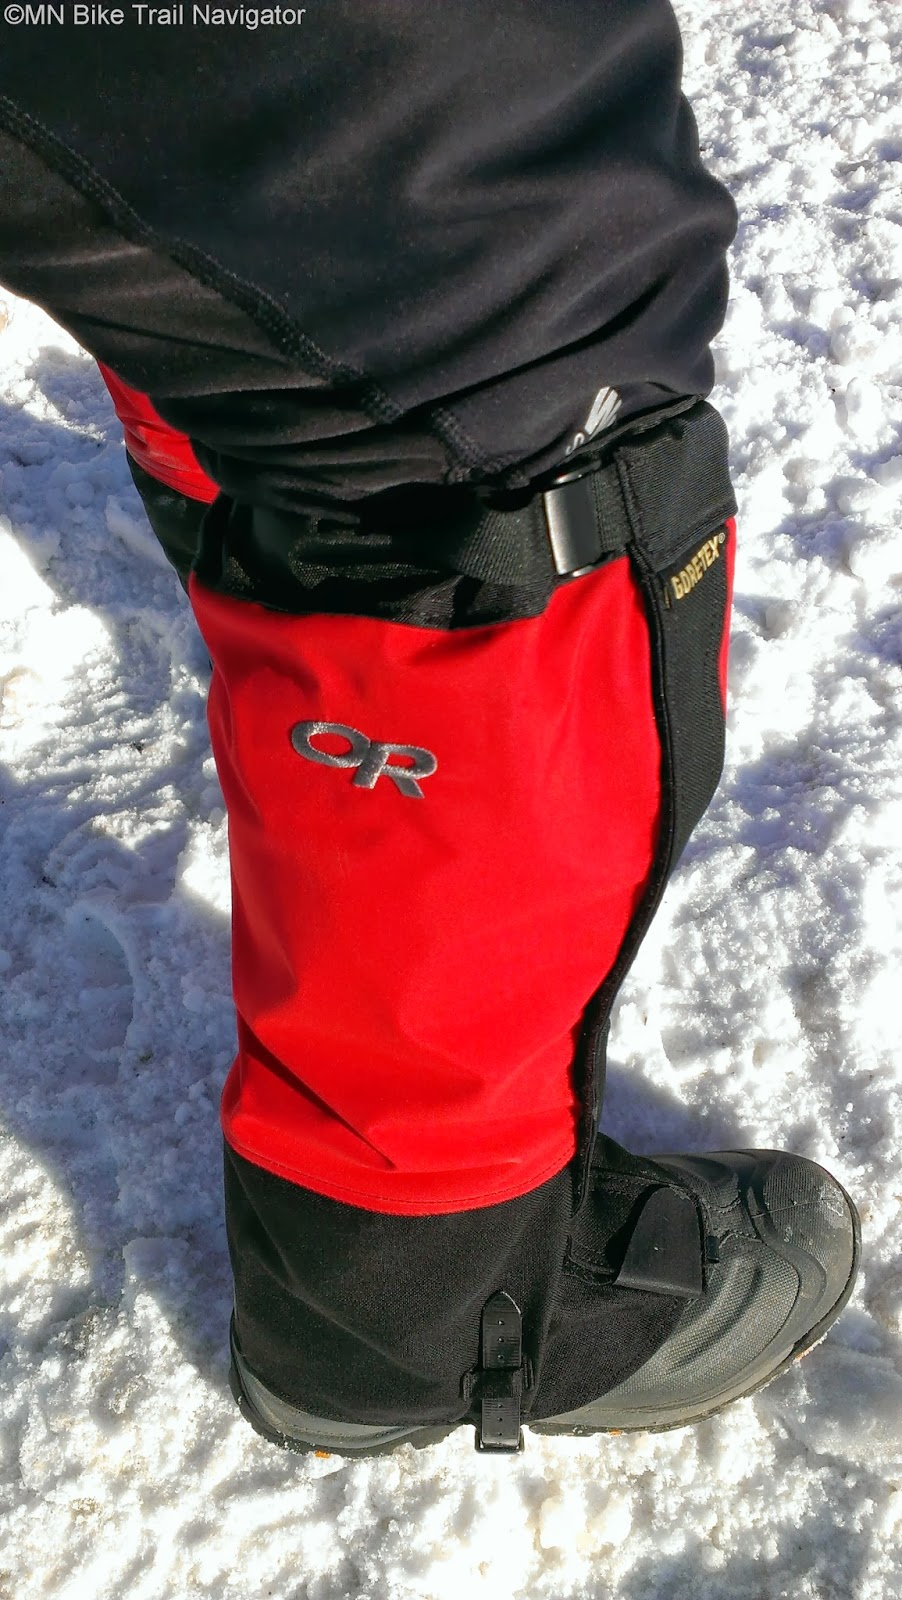 Mn Bike Trail Navigator Gaiters For The Winter Bike Commuter Or